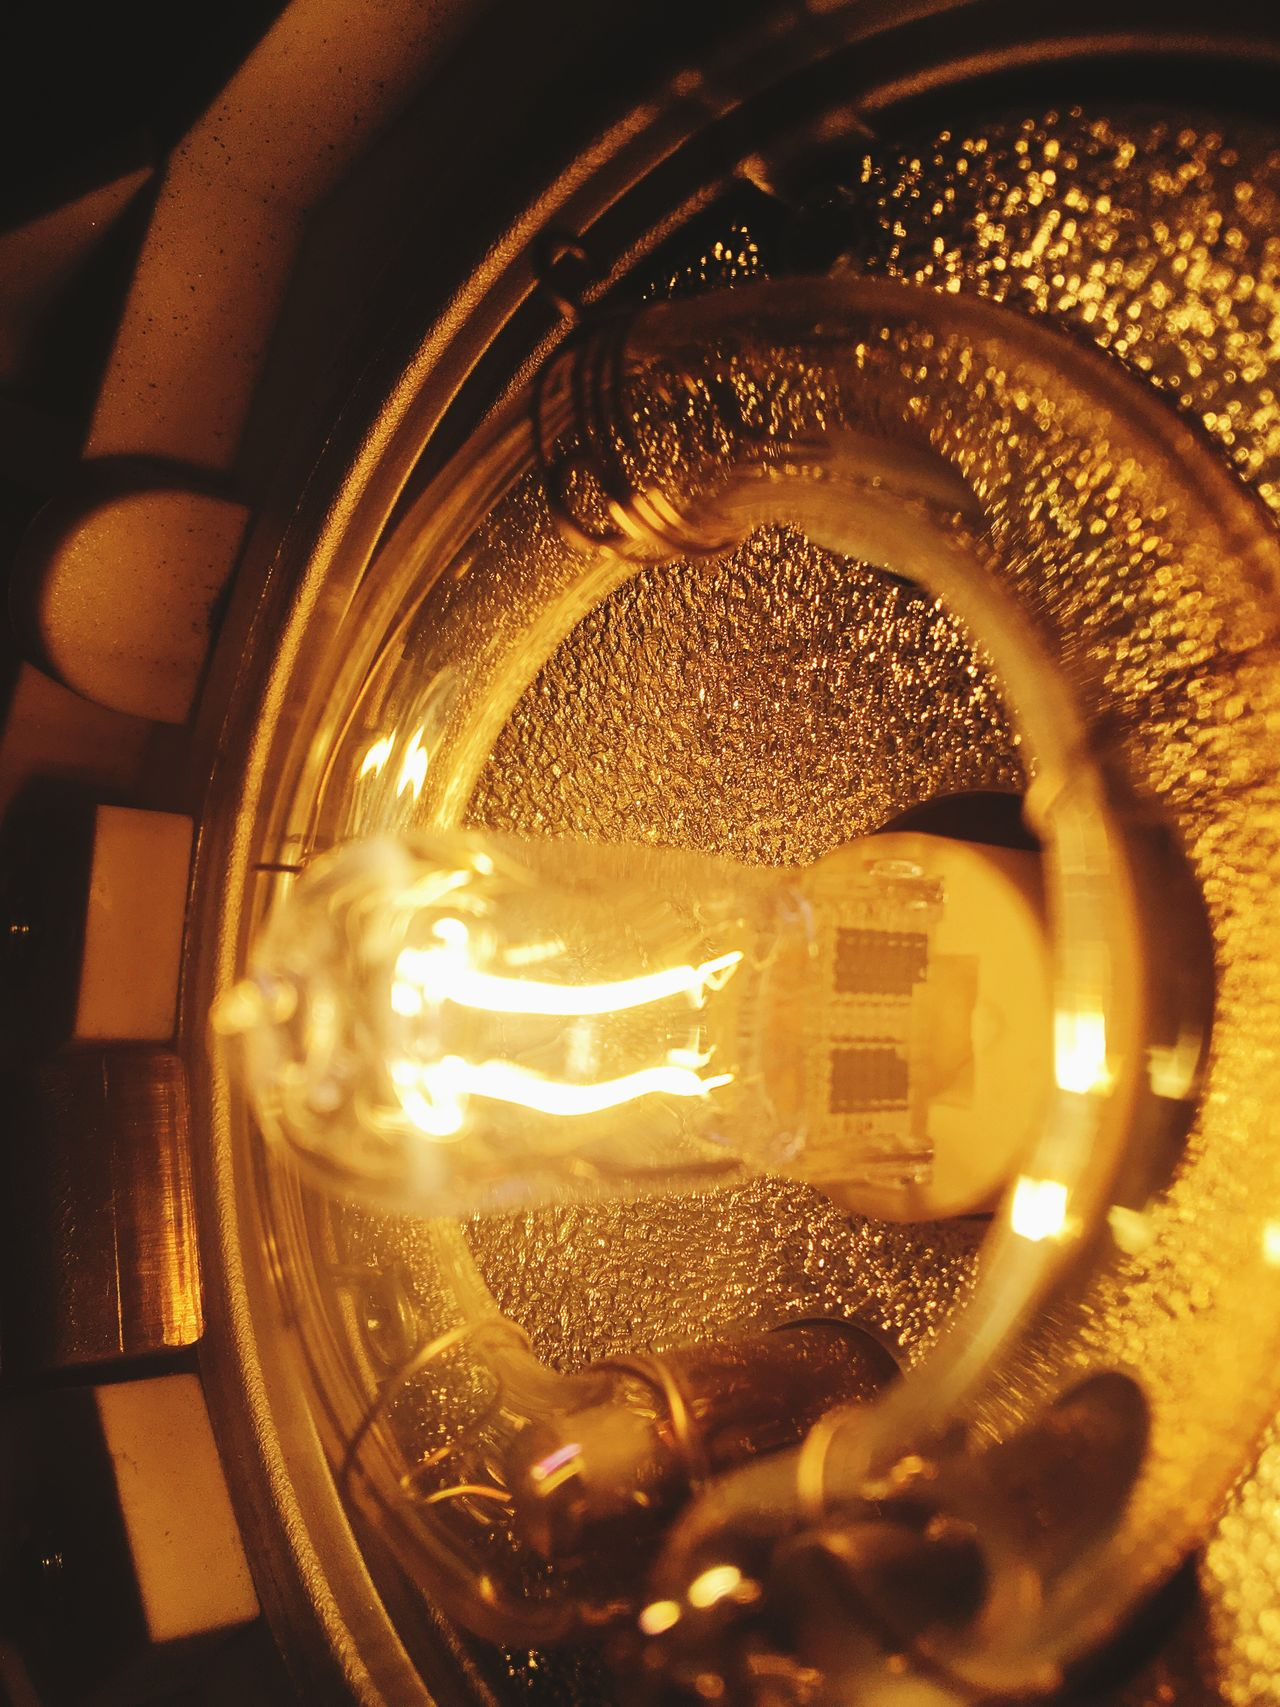 Illuminated Light Bulb Electricity  Technology Filament Indoors  Light Lamp Light Source Technical Bright Darkness And Light Darkness